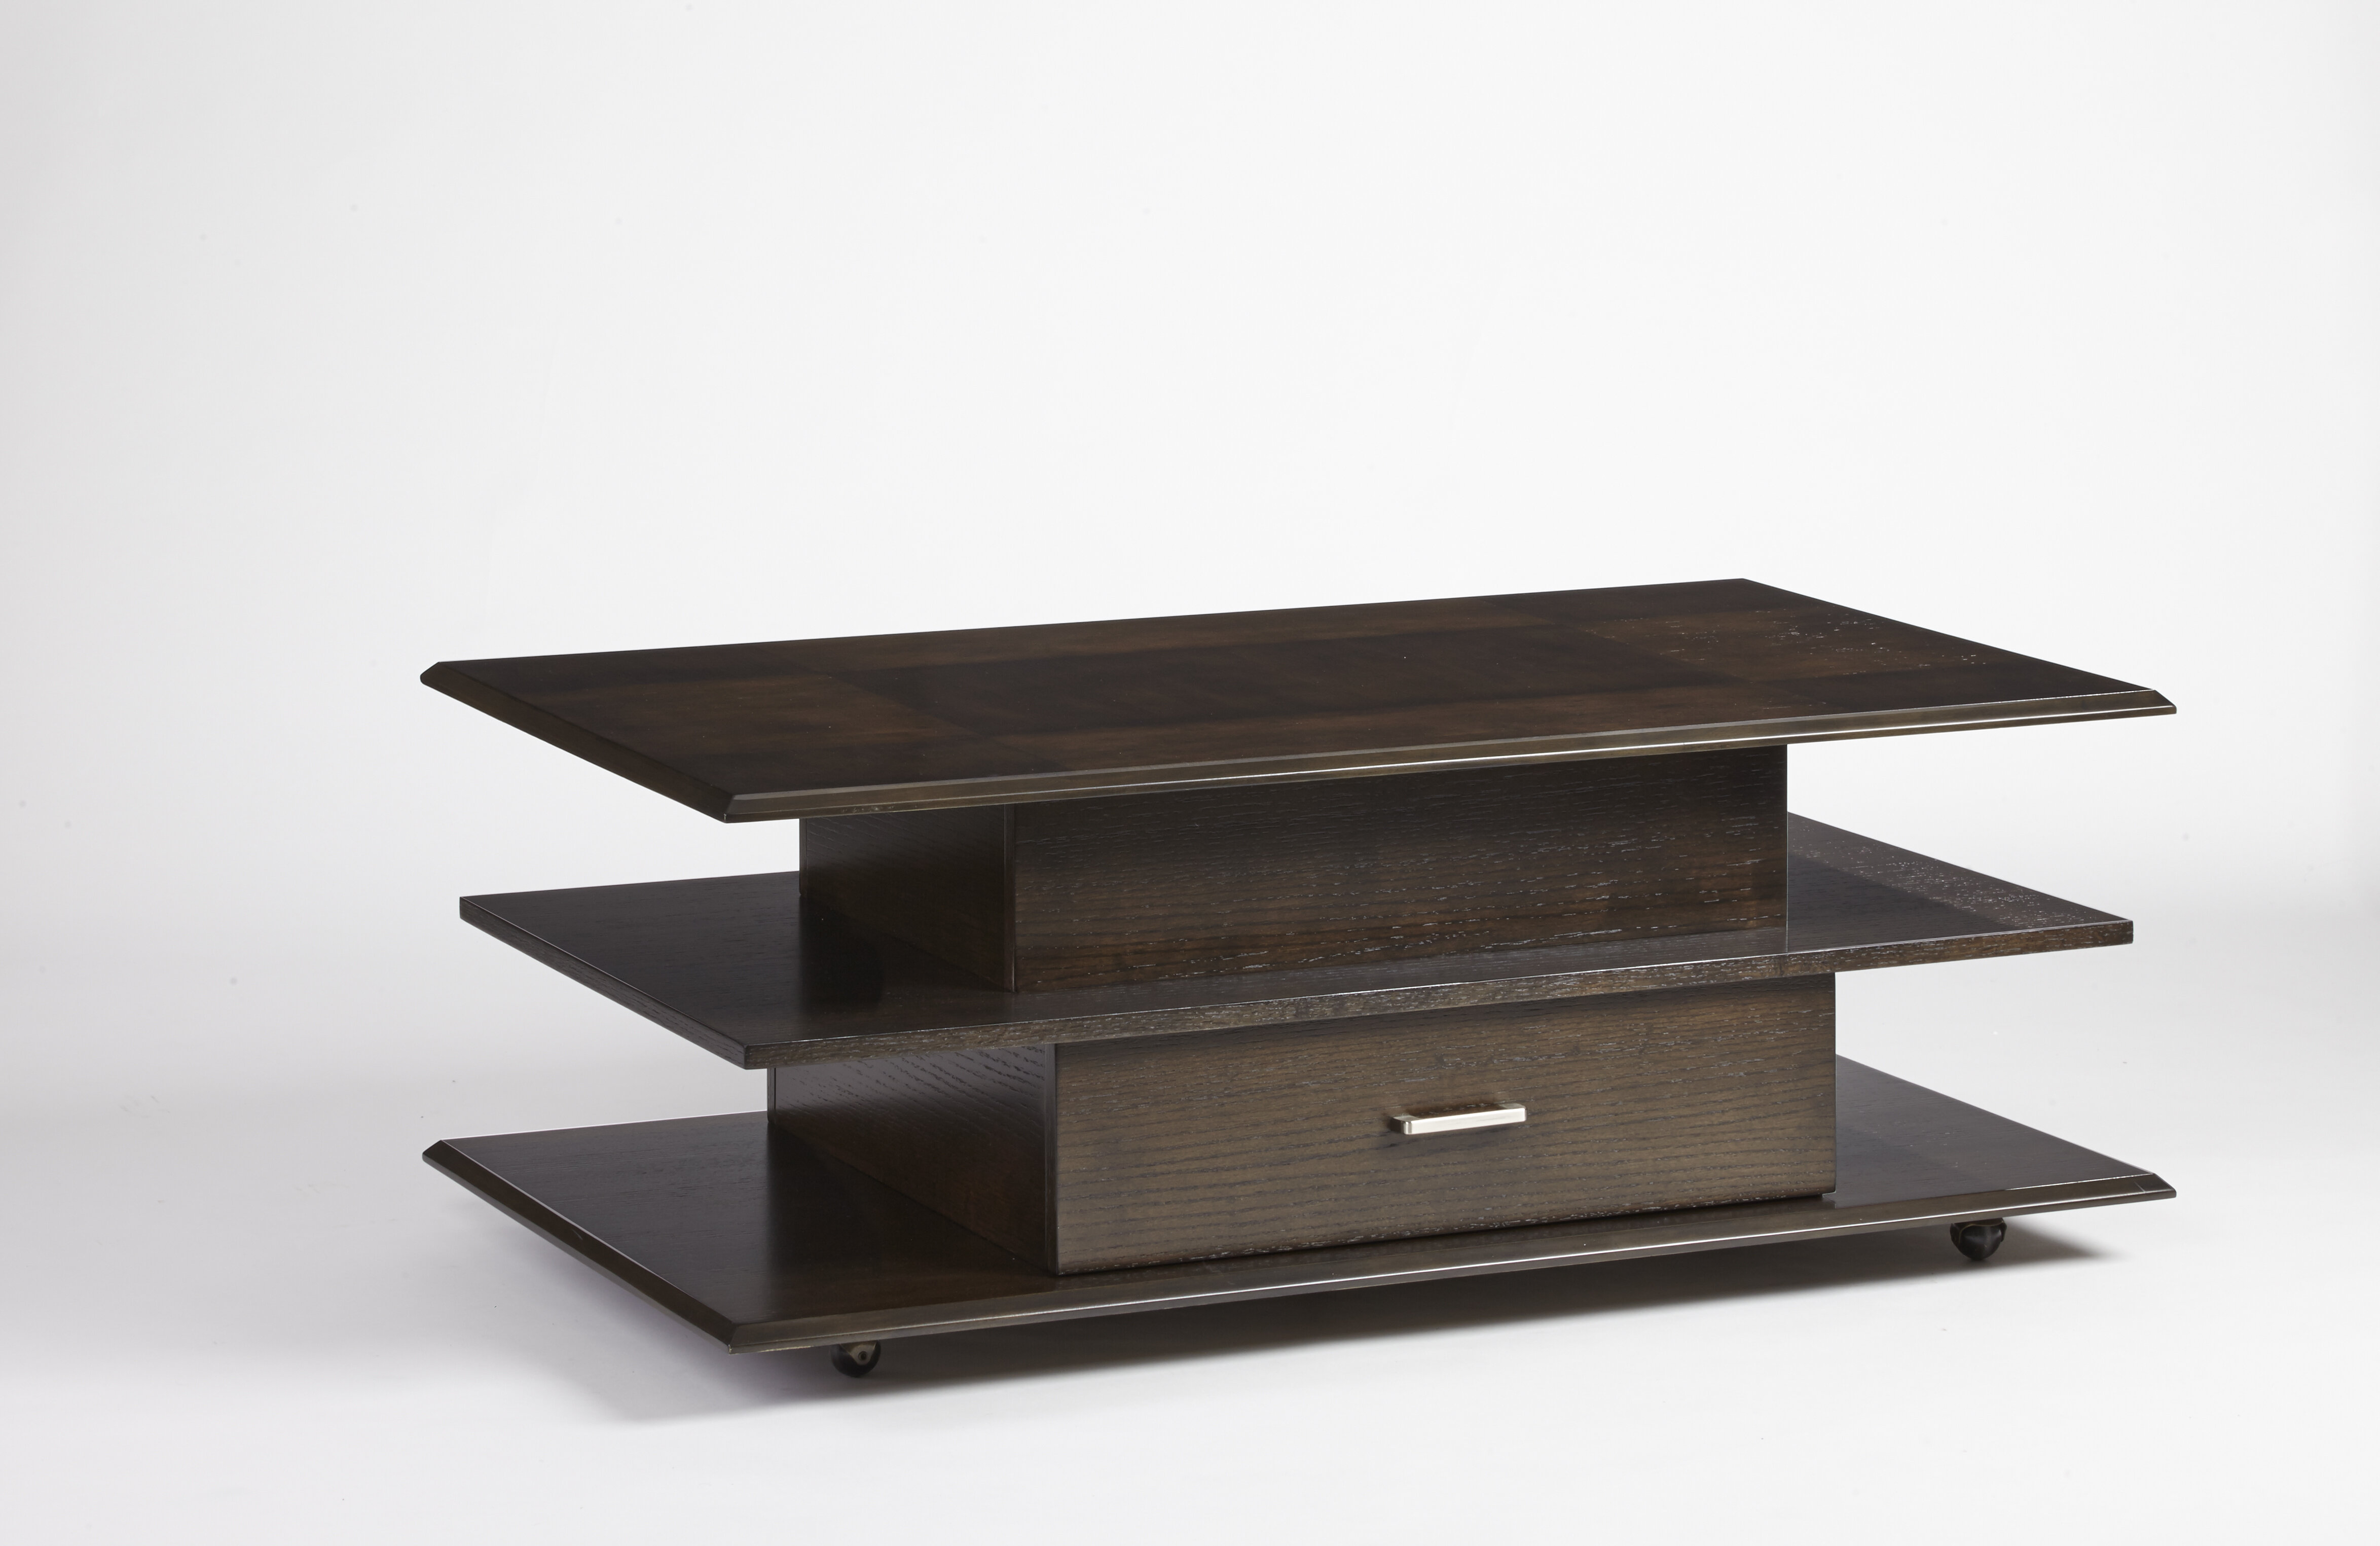 Ebern Designs Minner Lift Top Coffee Table & Reviews